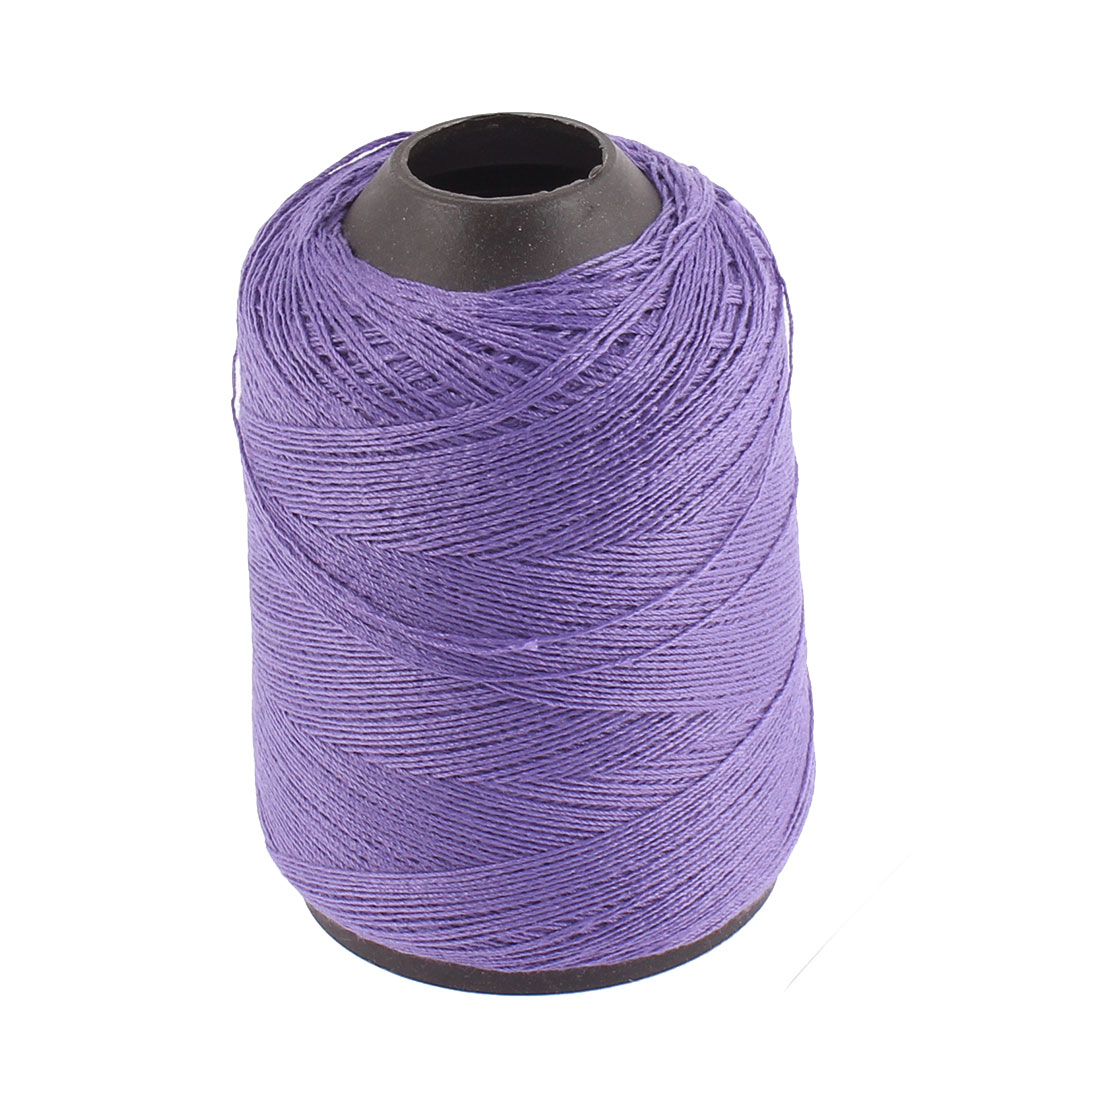 Tailor Polyester Crafting Clothing Sewing Thread Reel Purple